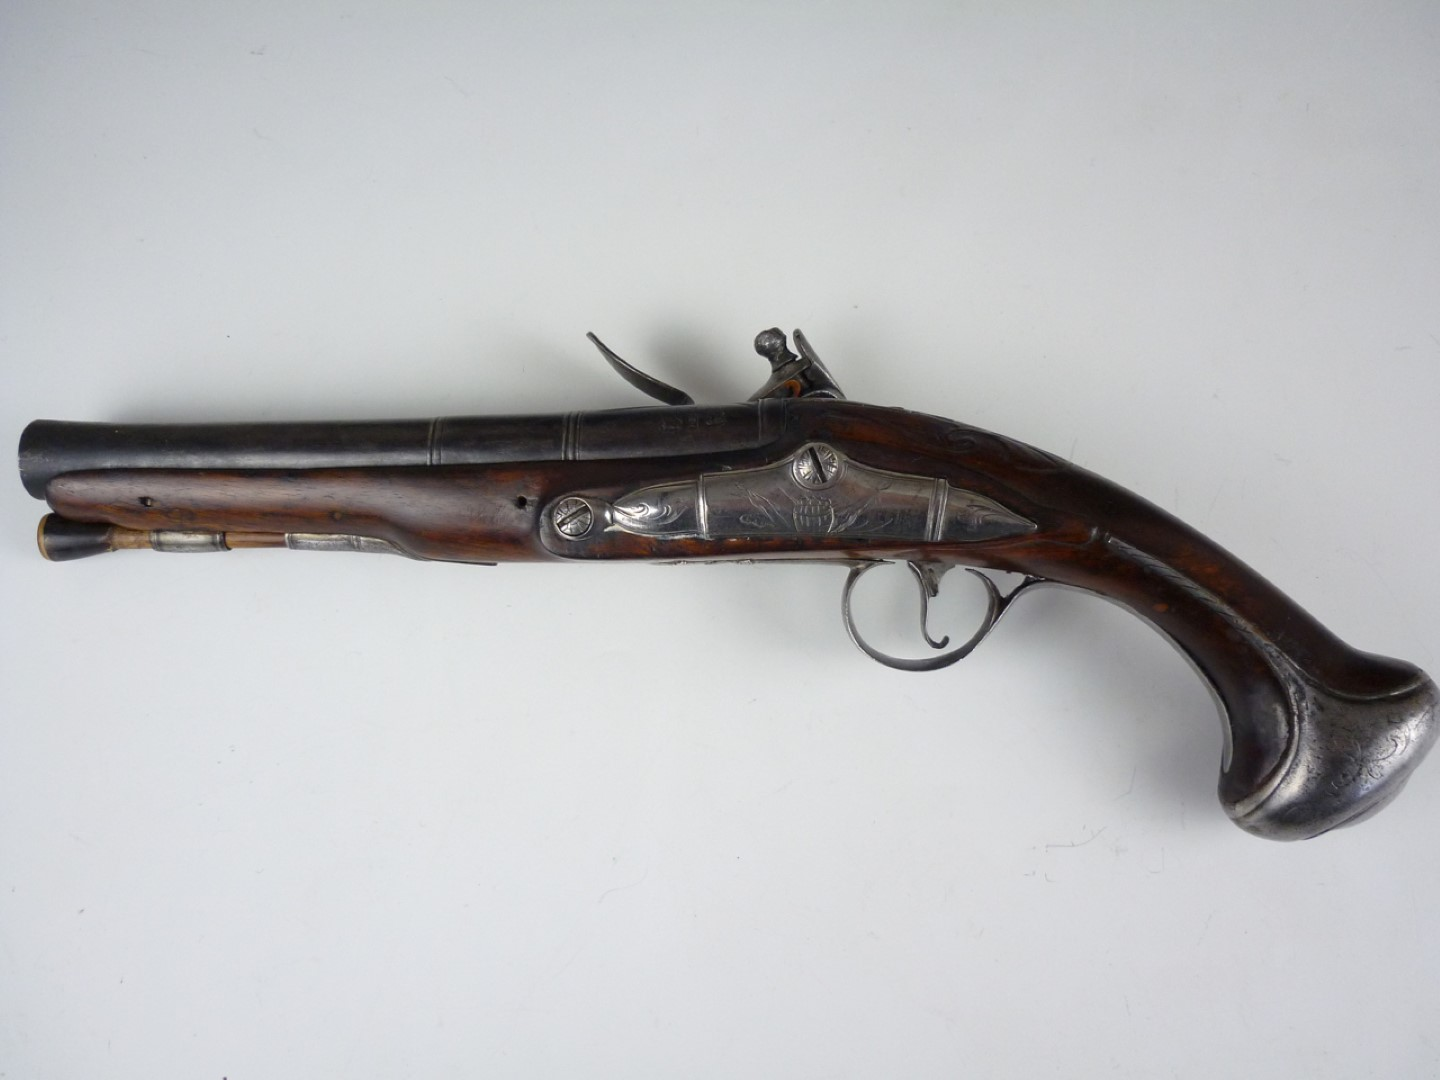 Lot 116 - A mid 18th Century flintlock overcoat or holster pistol by Thomas Richards, having a stepped swamped